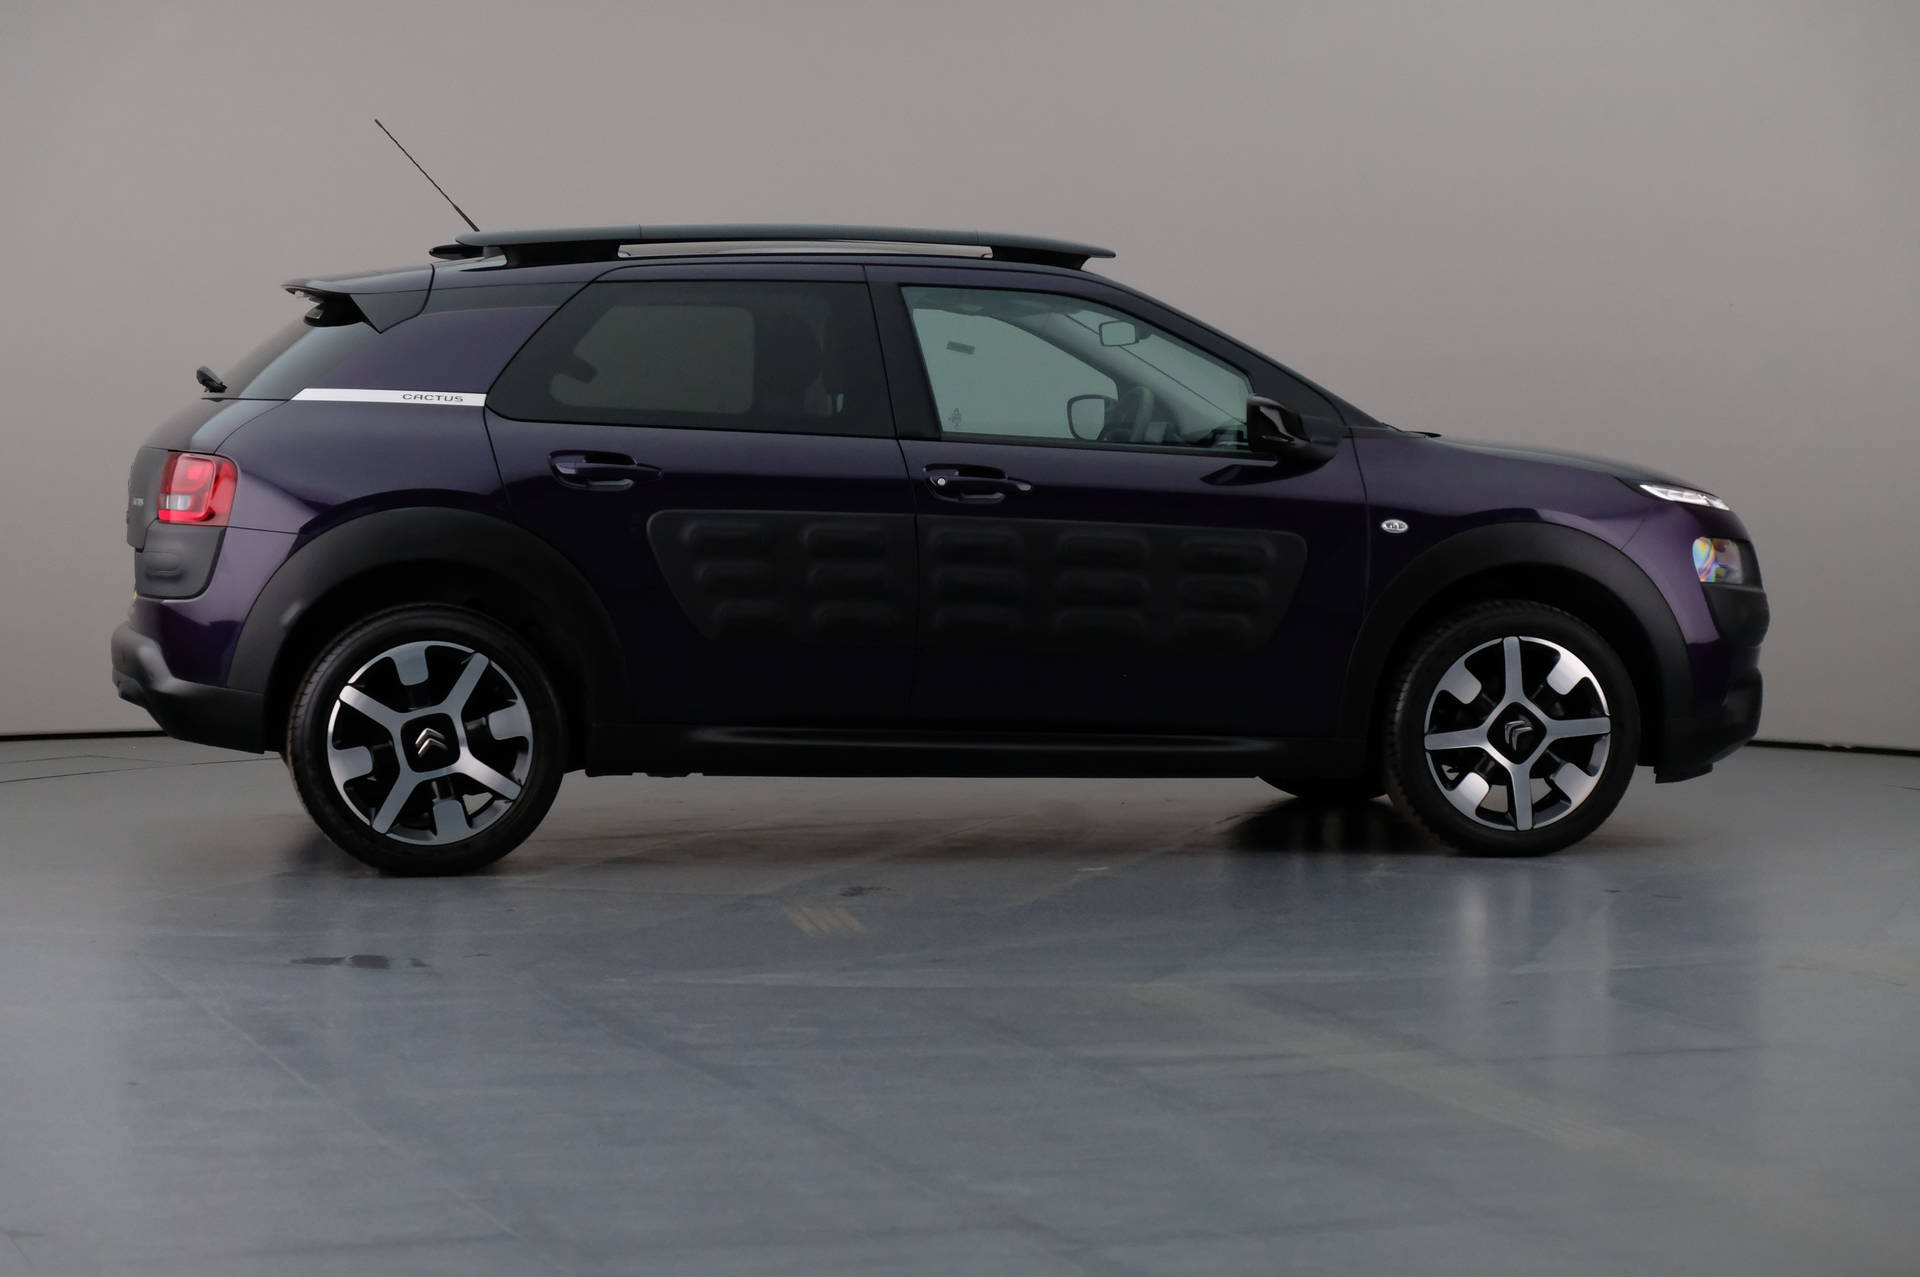 Citroën C4 Cactus 1.6 Blue HDi Flair Edition 5dr, 360-image30